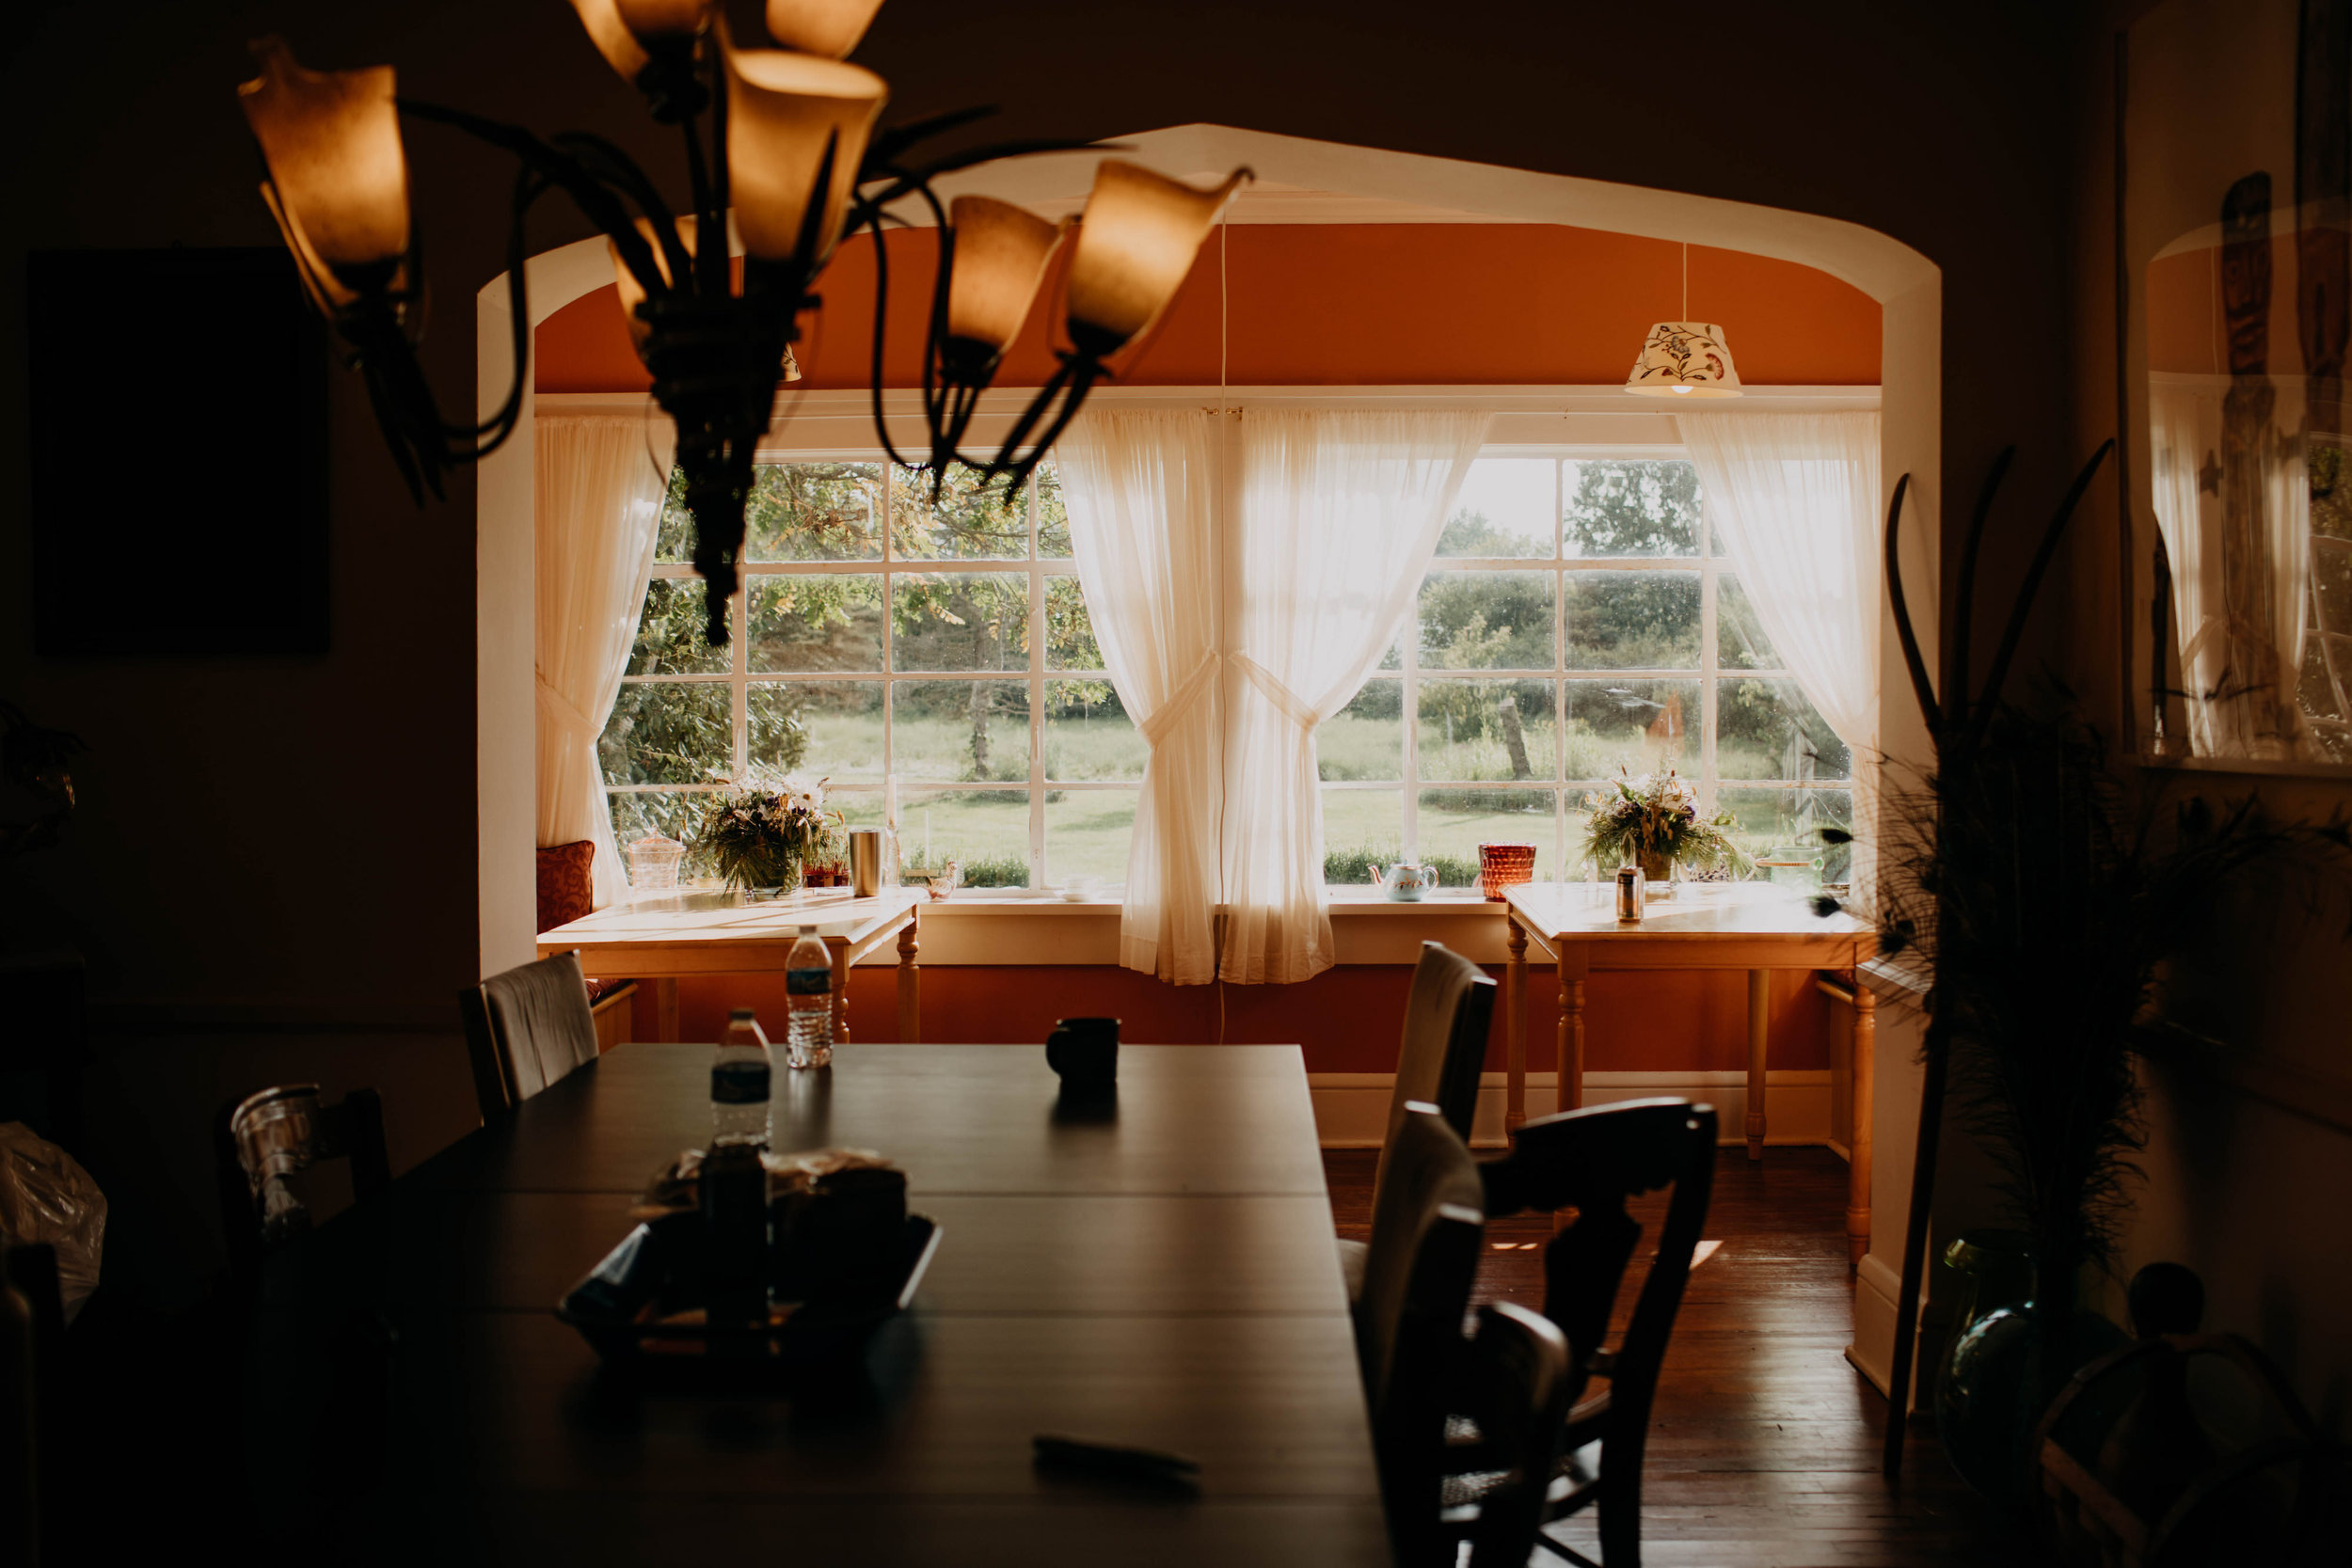 untraditional intimate bed and breakfast wedding orchard house bed and breakfast wedding granville ohio13.jpg